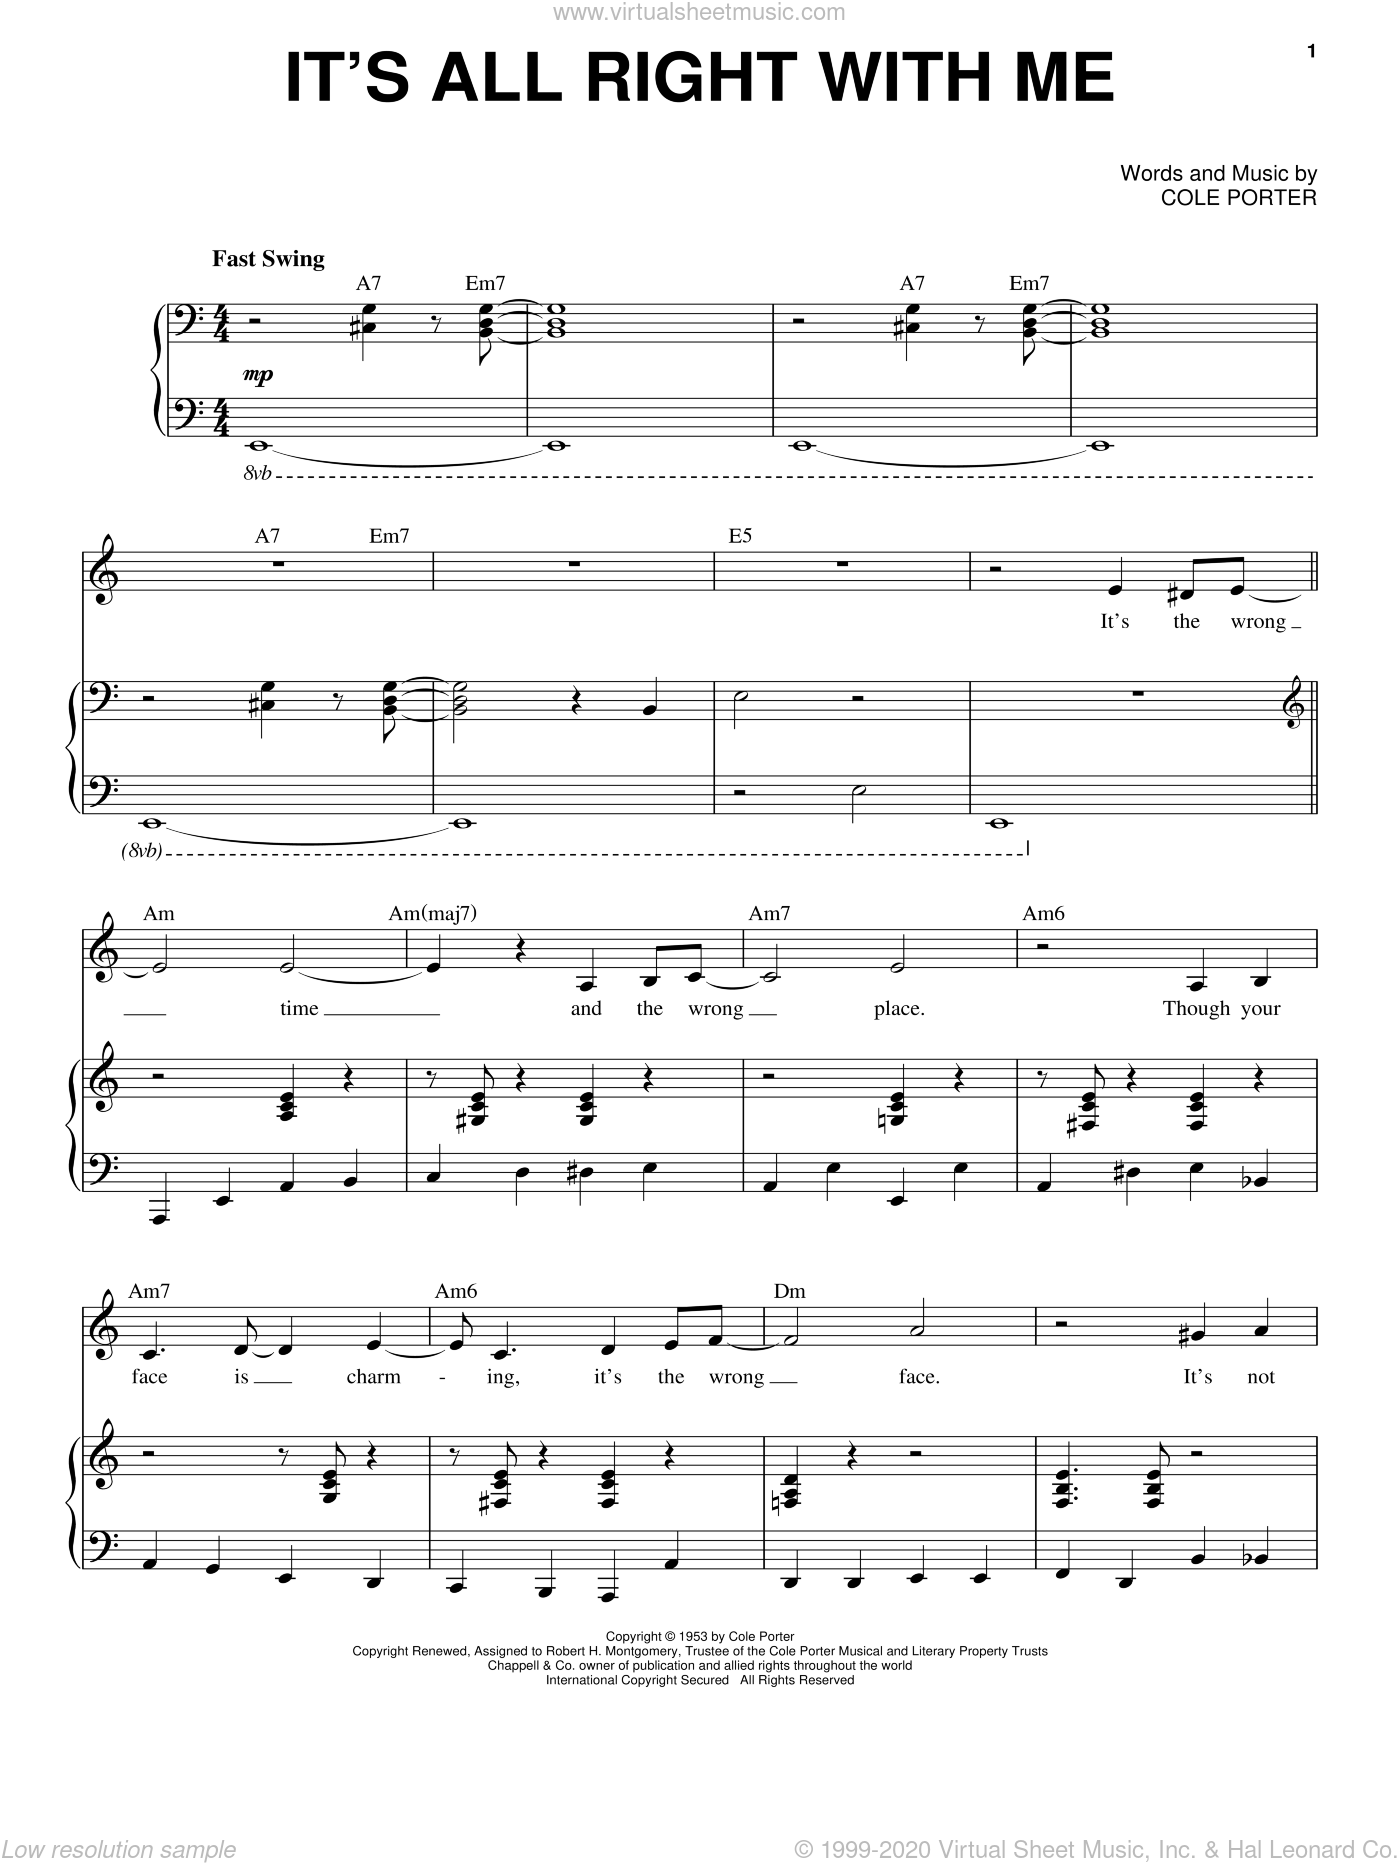 It's All Right With Me sheet music for voice and piano by Frank Sinatra, Come Fly Away (Musical) and Cole Porter, intermediate skill level